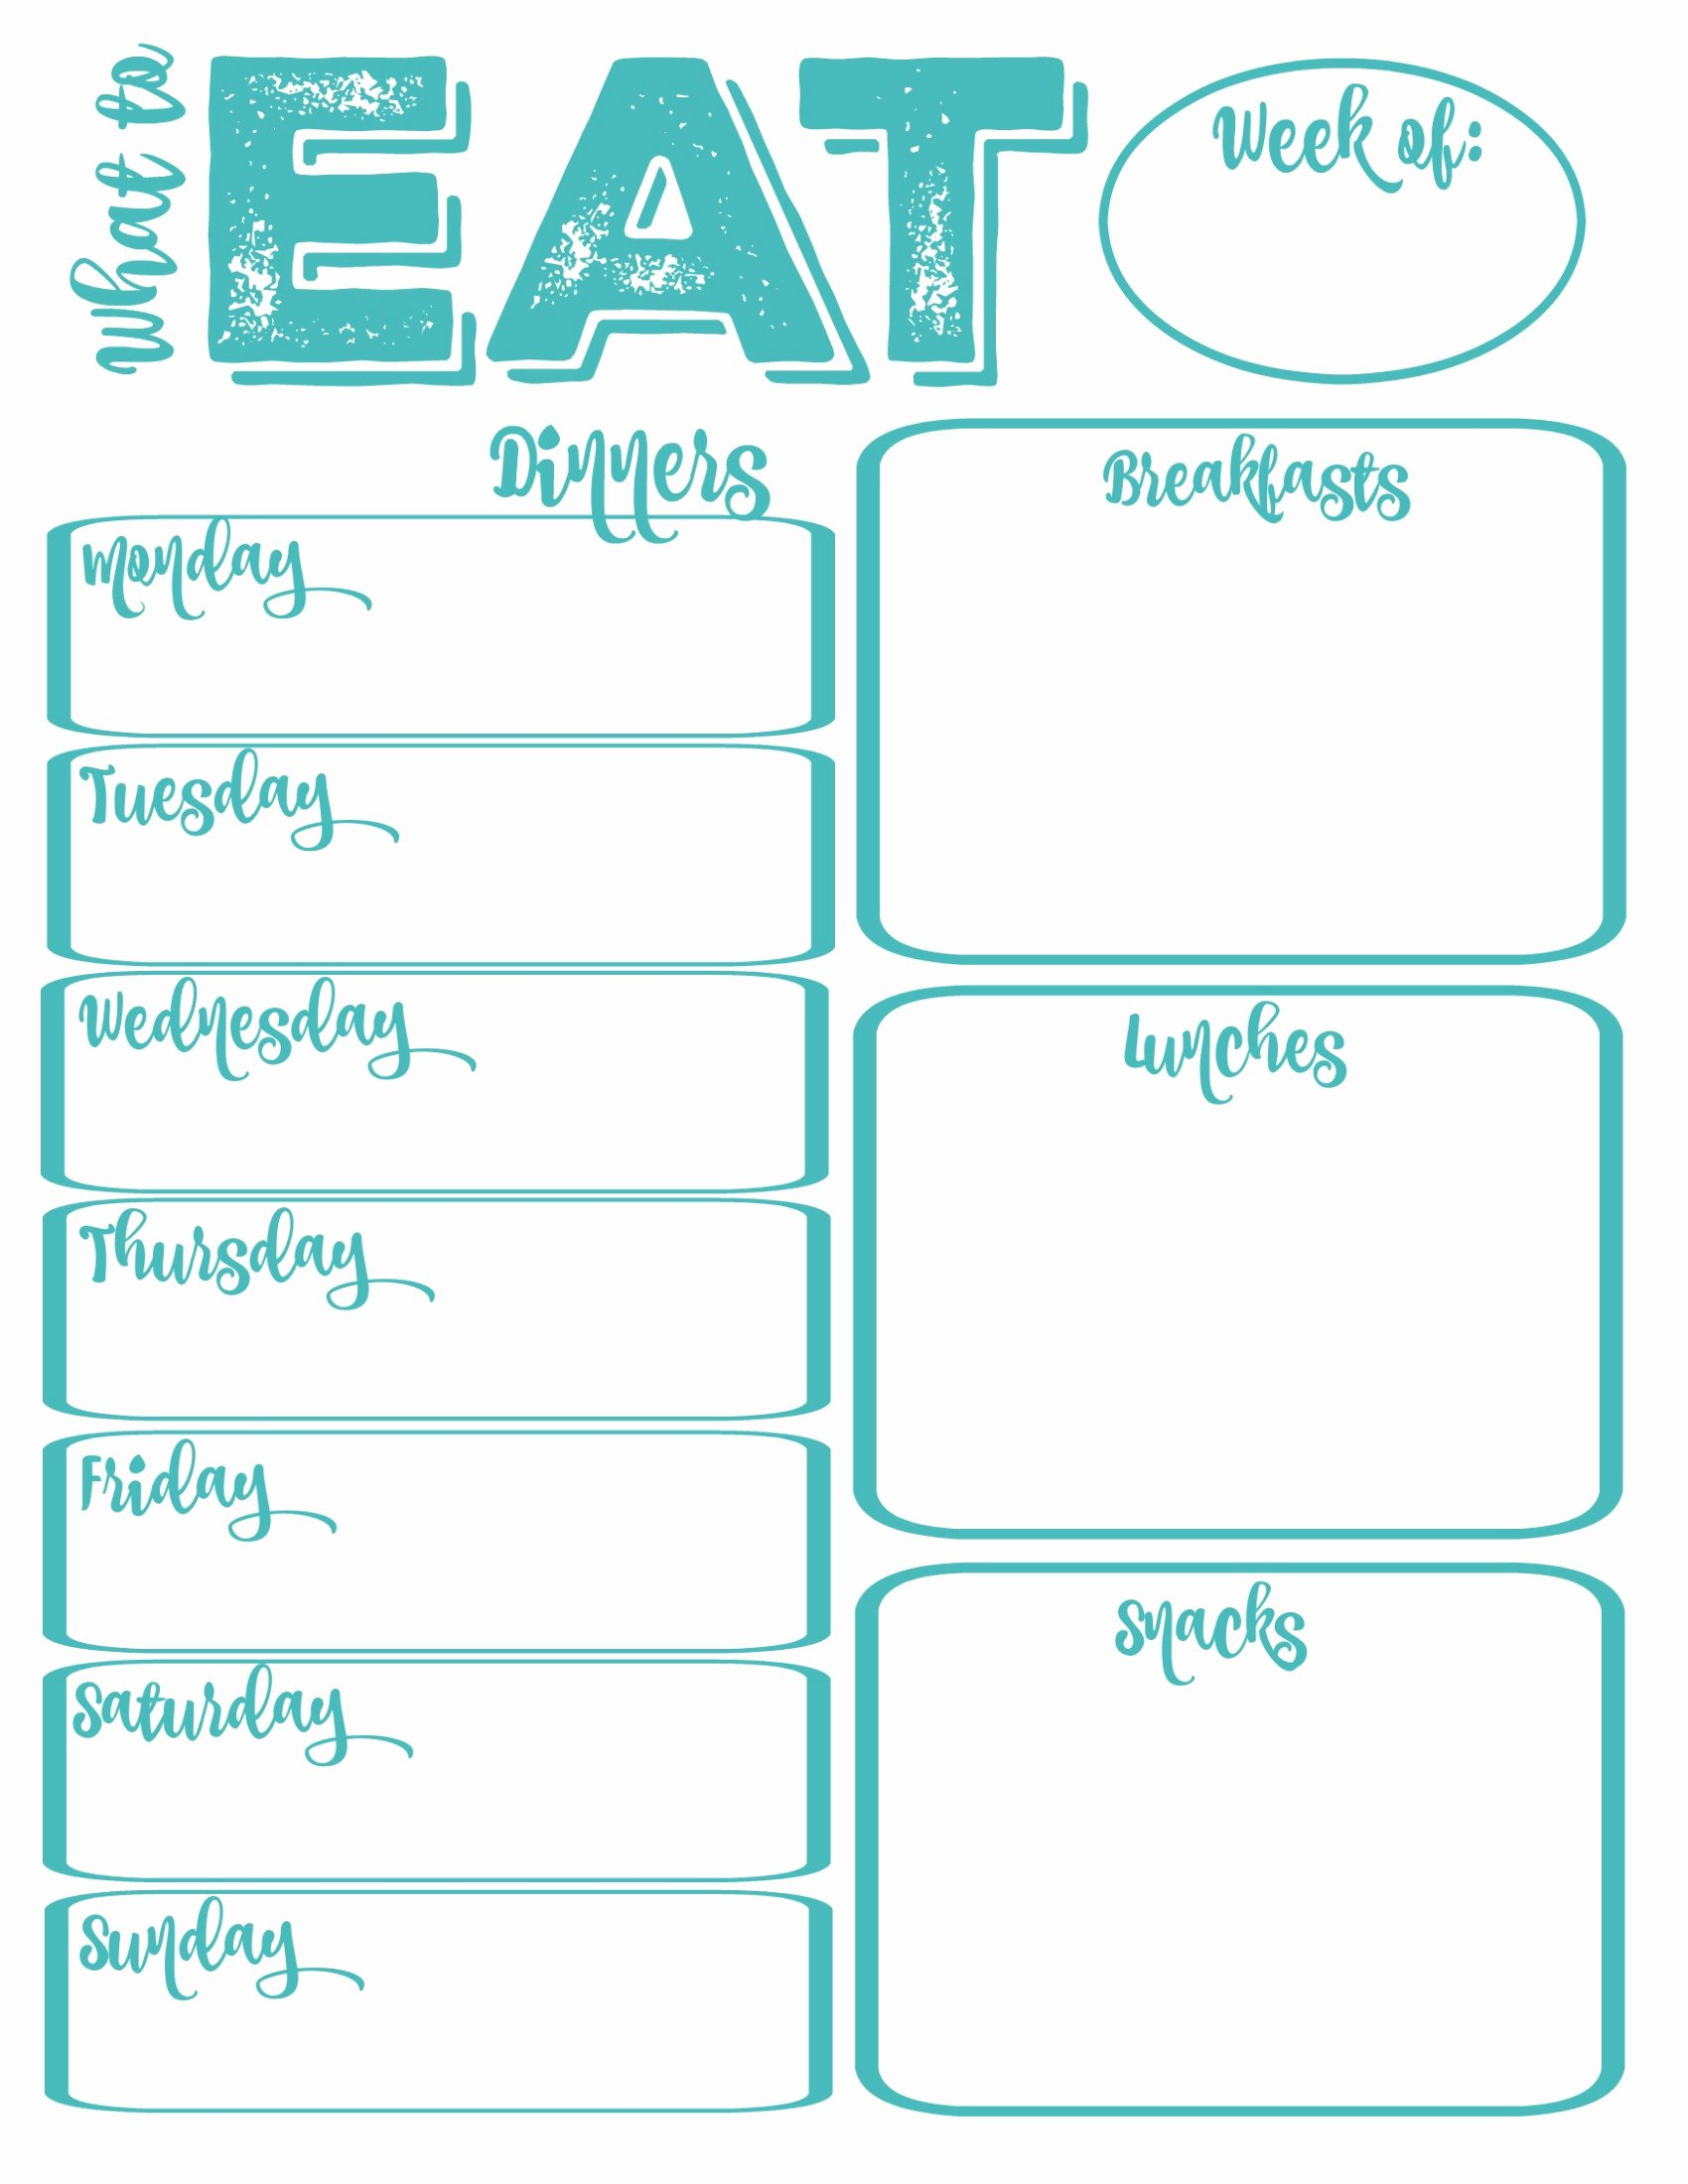 Weekly Meal Planner Template Printable Beautiful Pantry Makeover Free Printable Weekly Meal Planner and